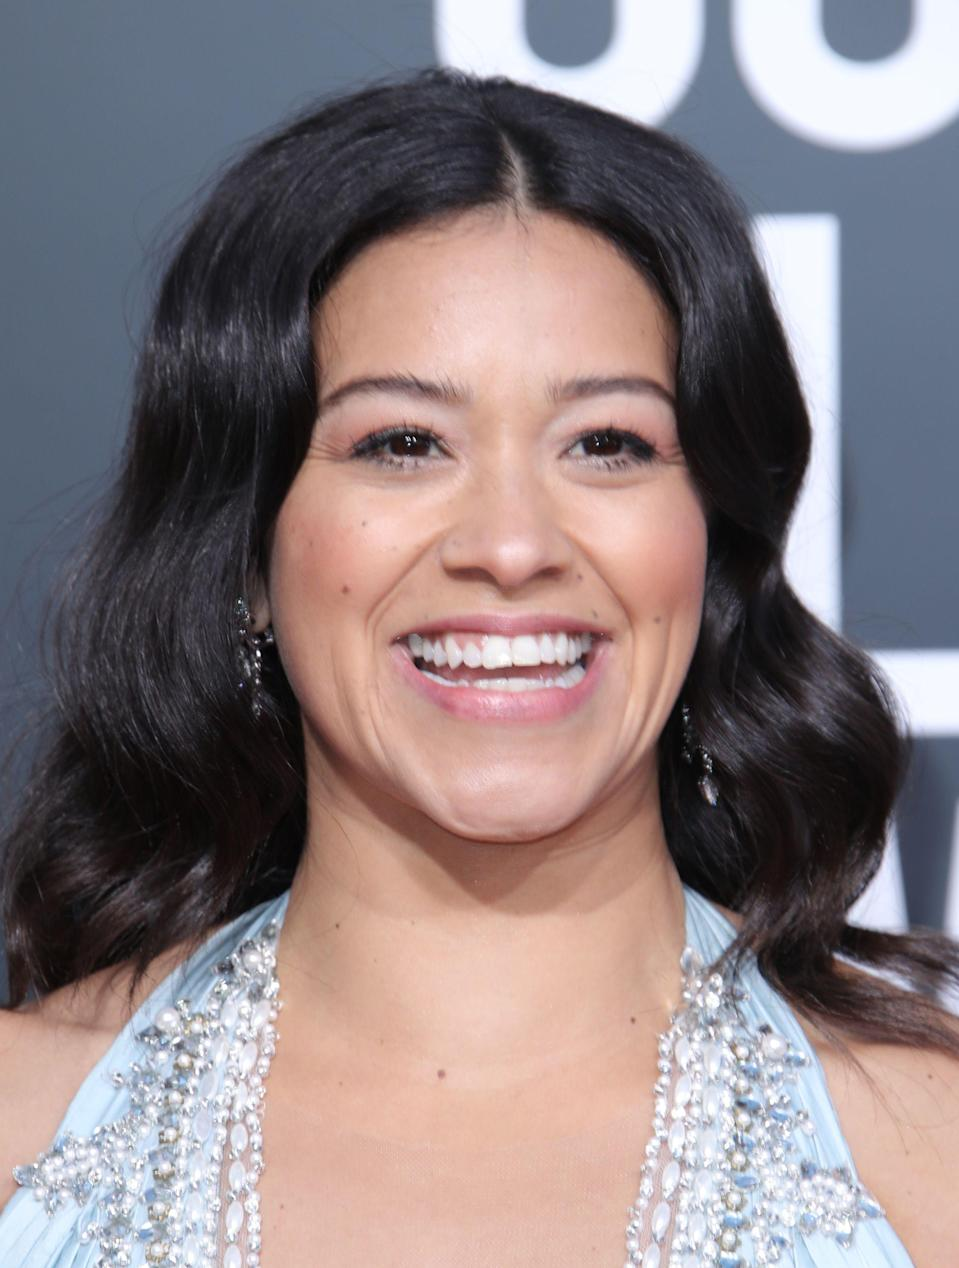 <p><strong><em>Someone Great</em></strong><br>19th April</p><p>You want it, you got it. Netflix is bringing us another romantic comedy — this time, starring Gina Rodriguez. She plays a newly single woman who decides to go on one last New York adventure before moving for her dream job. The movie is produced by Rodriguez and <em>Bridesmaids</em> director Paul Feig, and directed by Jennifer Kaytin Robinson.</p>